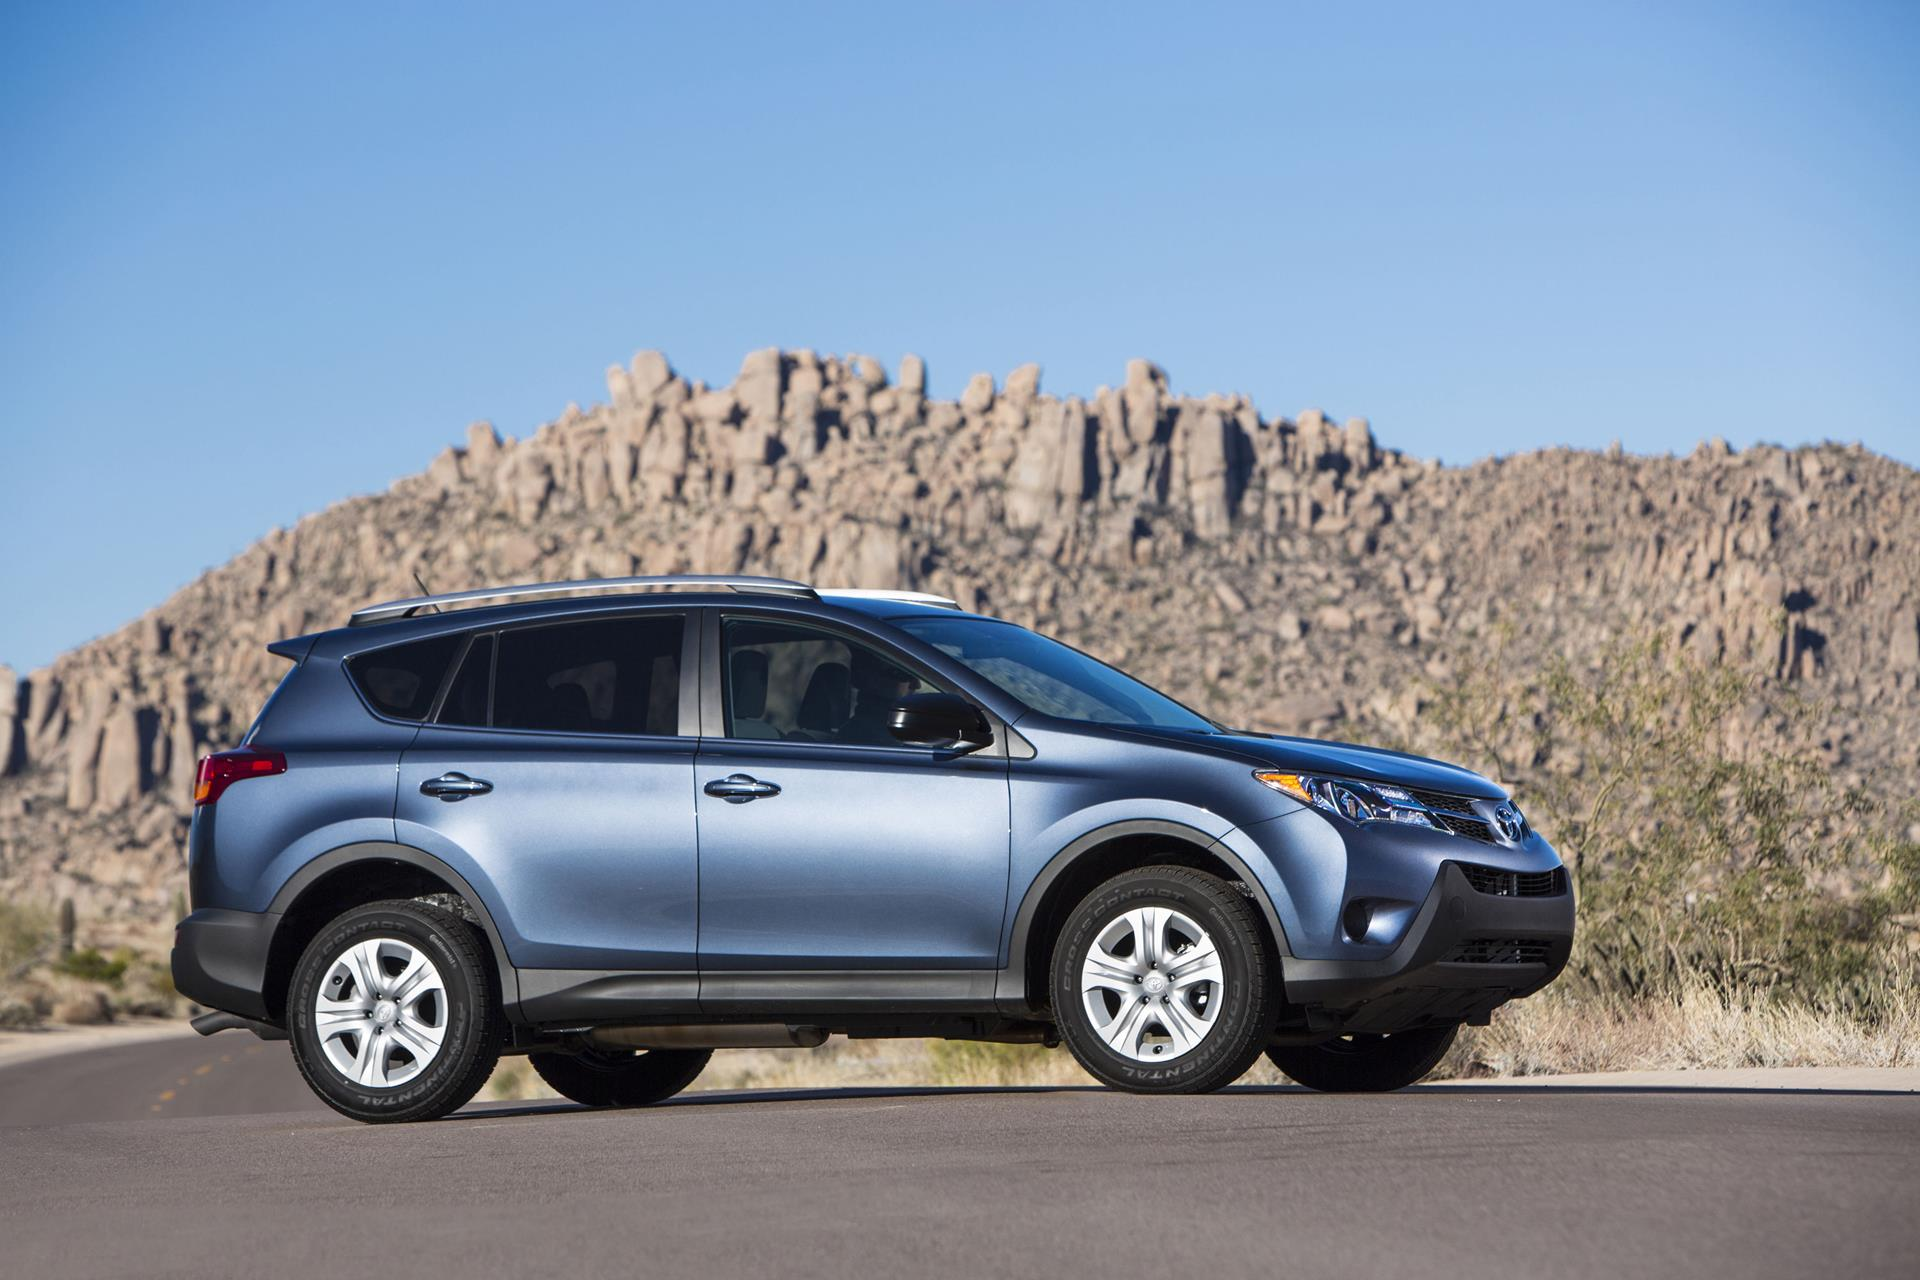 2015 toyota rav4 news and information. Black Bedroom Furniture Sets. Home Design Ideas